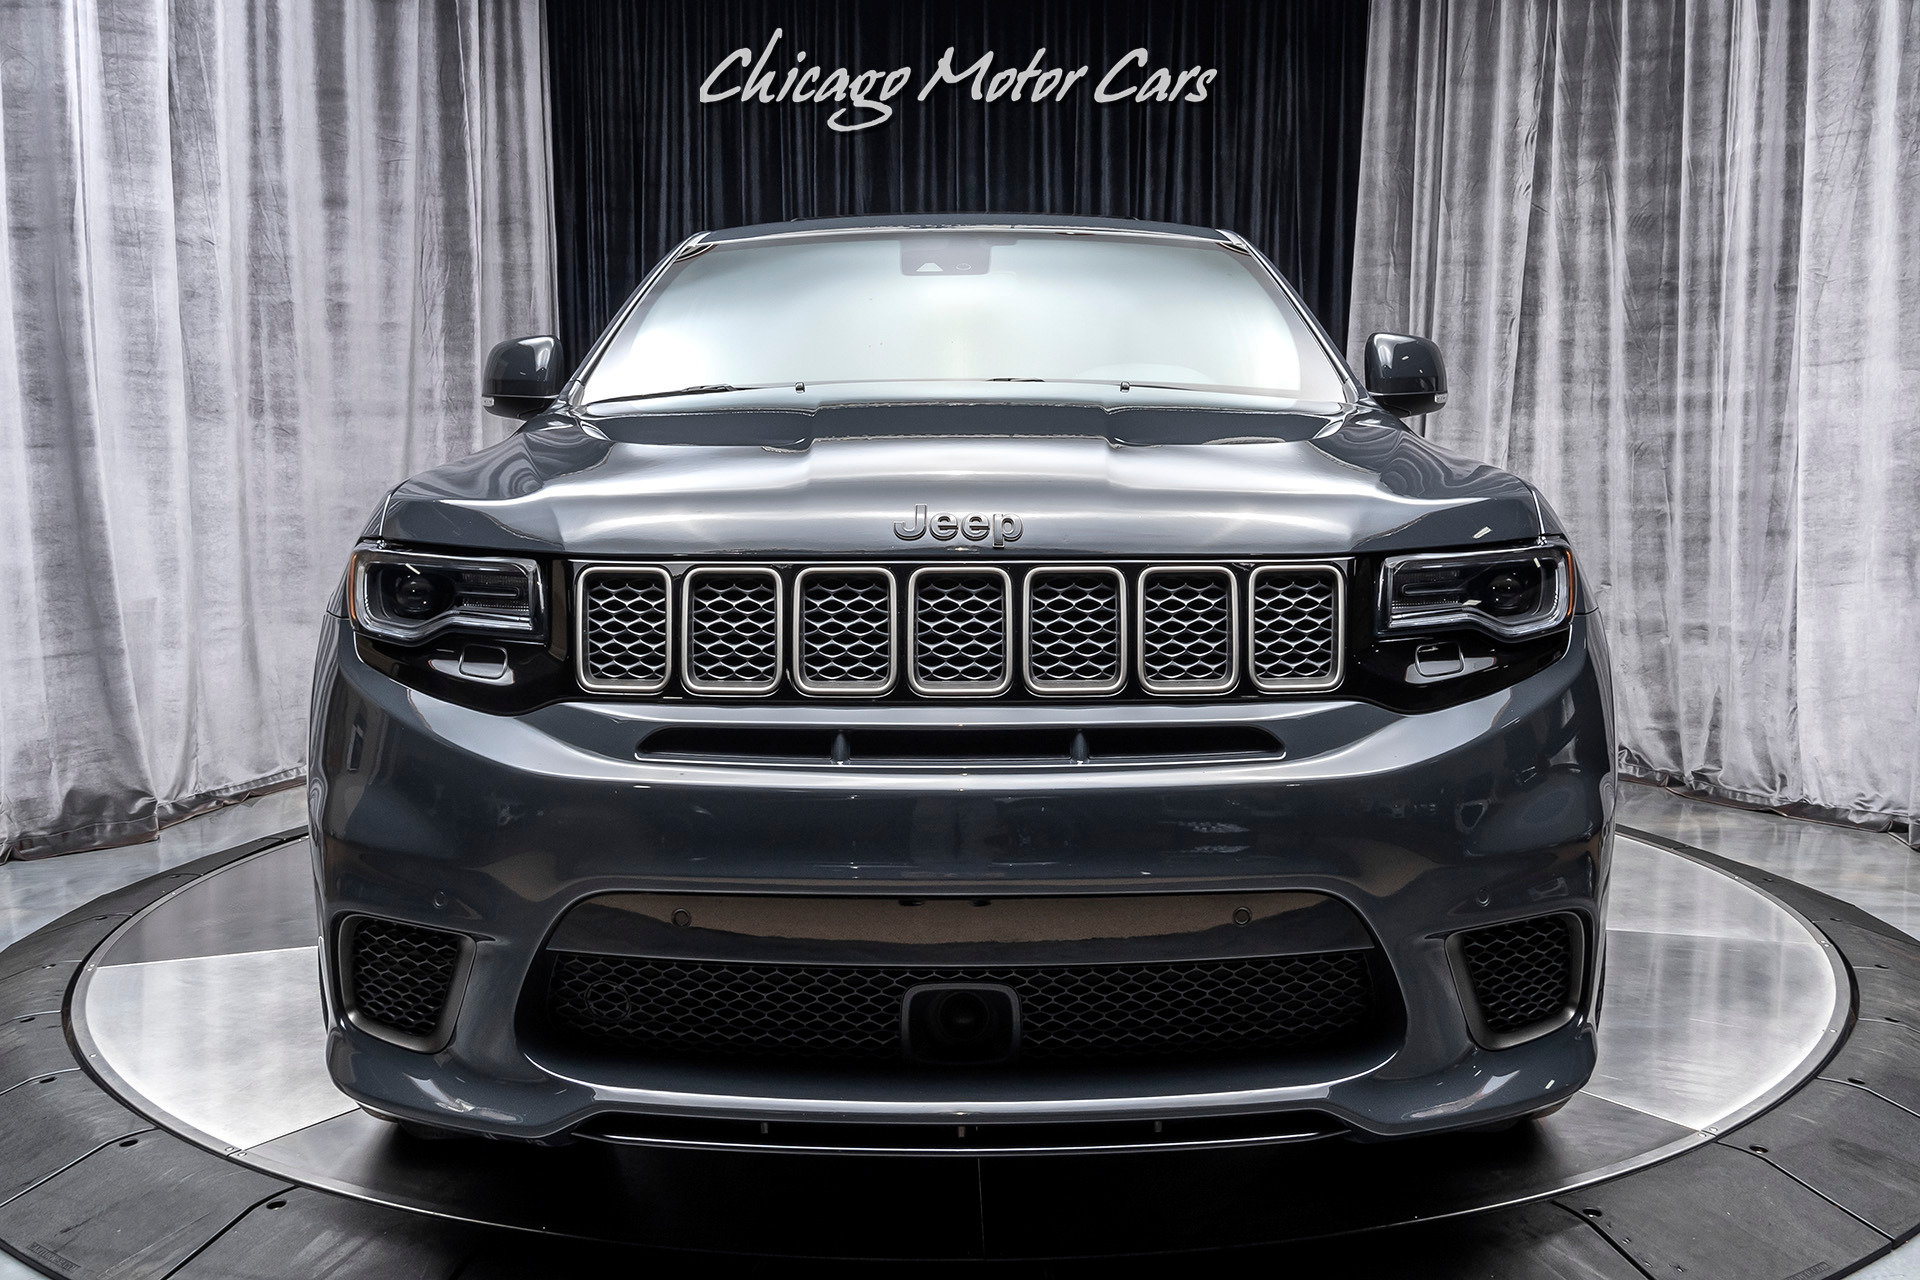 Used-2018-Jeep-Grand-Cherokee-Trackhawk--707HP-HELLCAT-ENGINE-REAR-DVD-ENTERTAINMENT